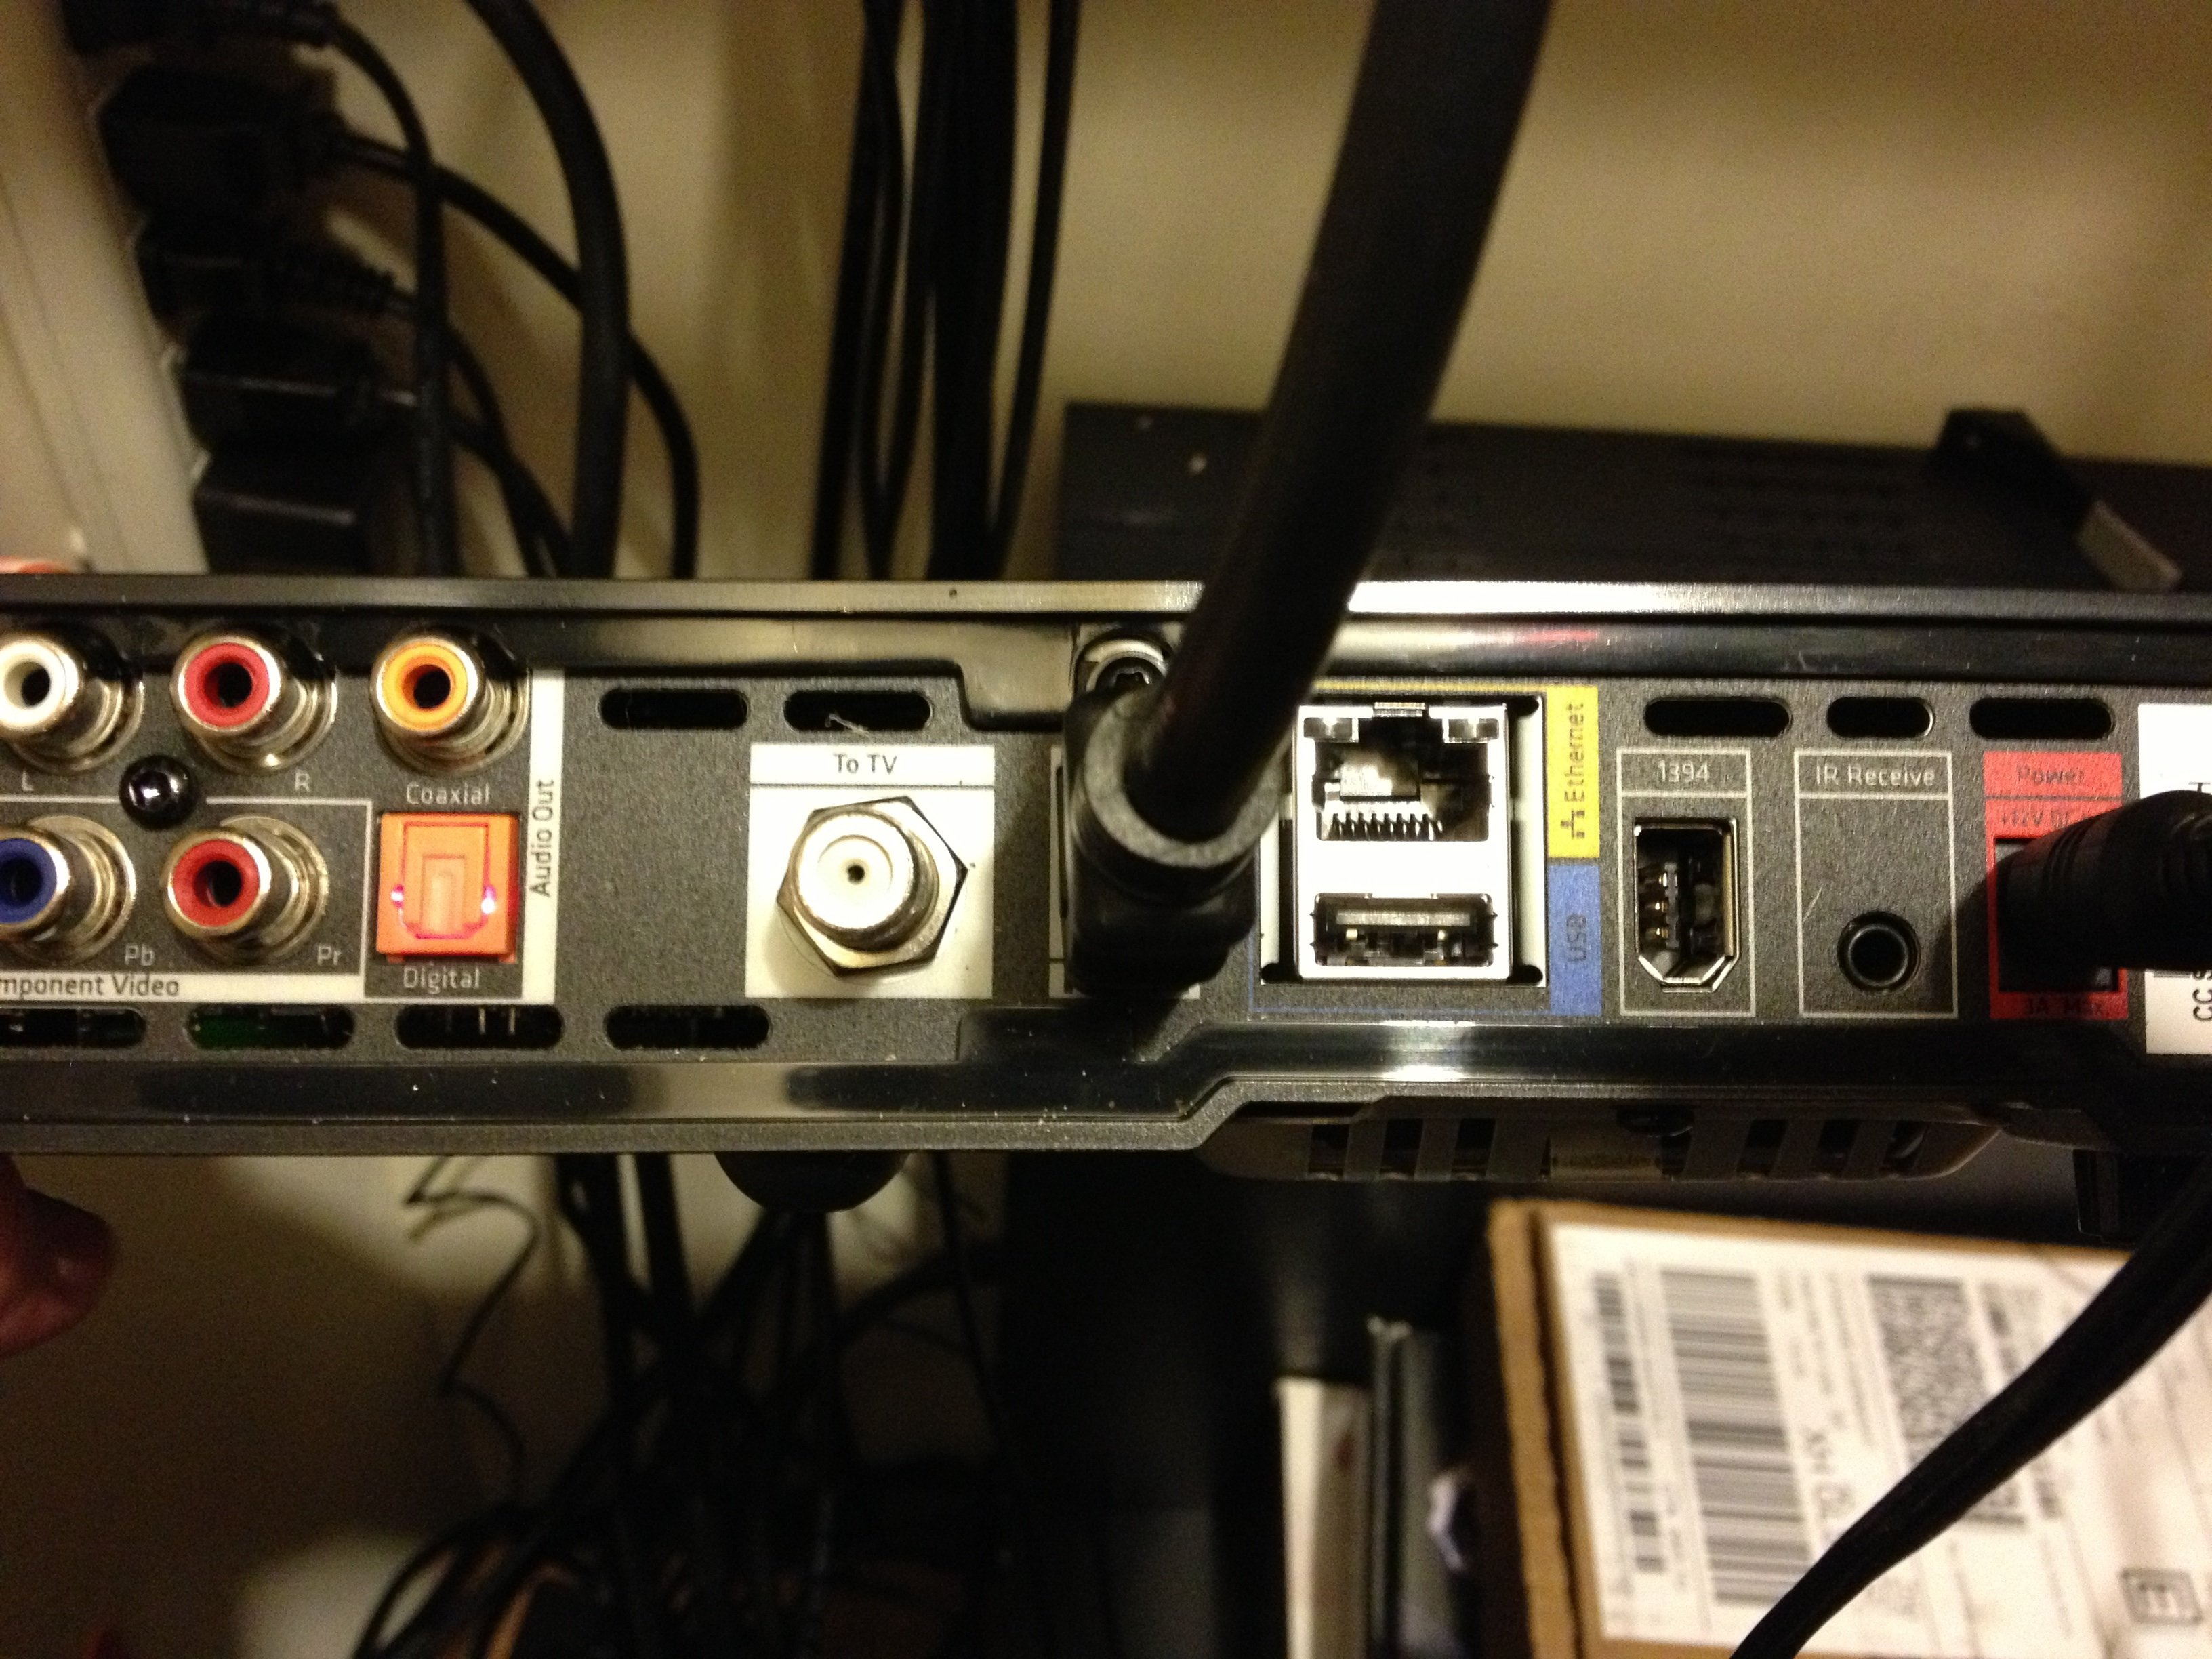 Comcast X1 Dvr Box Connections - Somurich com